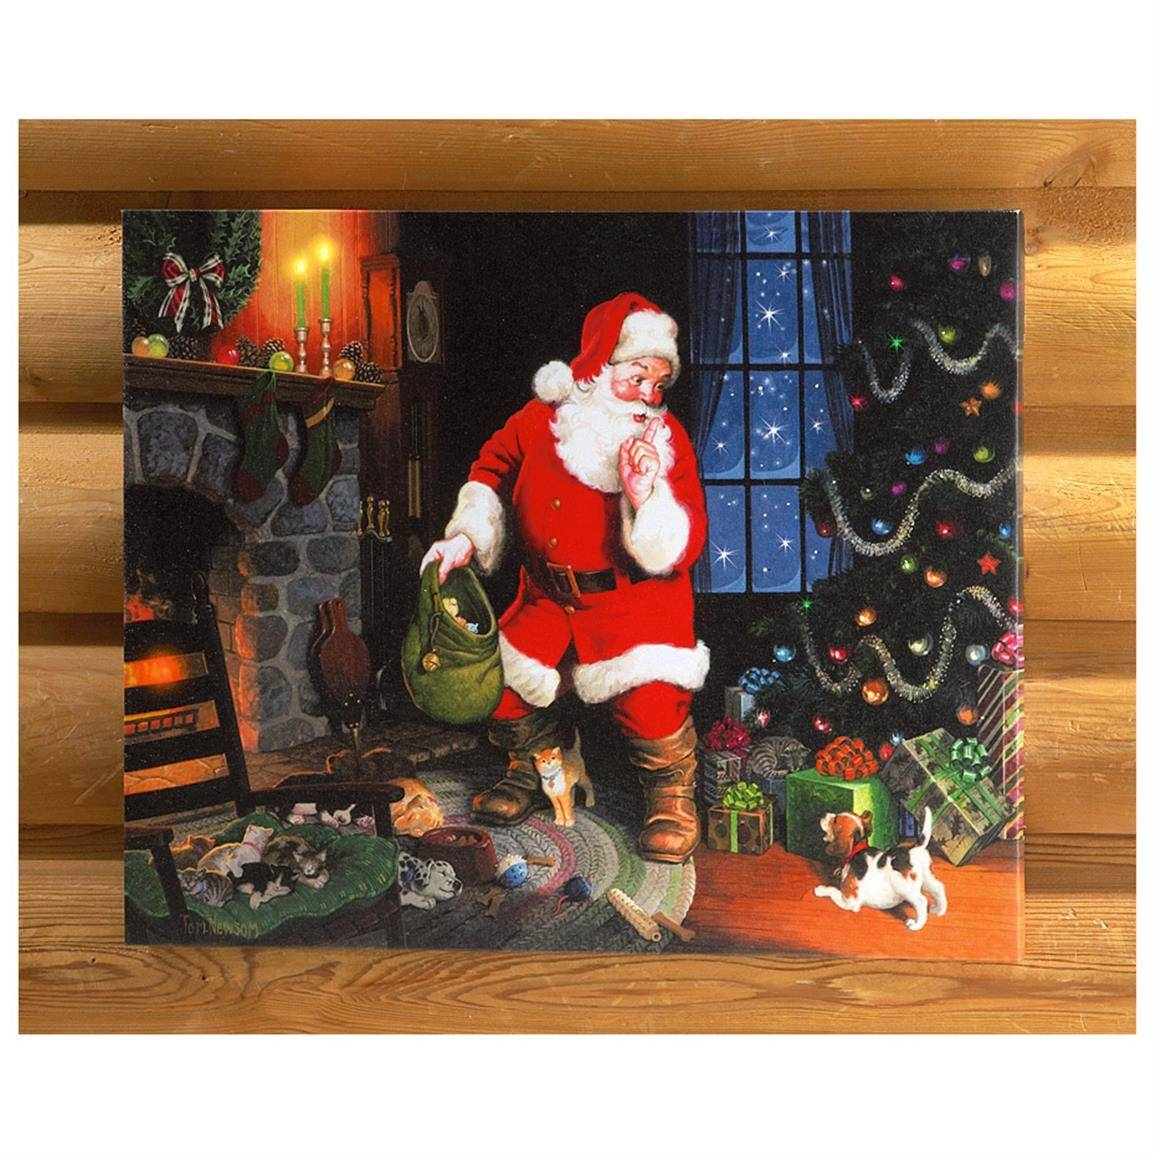 Canvas Wrapped Christmas Wall Art – 616310, Seasonal Gifts At For Most Recent Seasonal Wall Art (View 7 of 20)